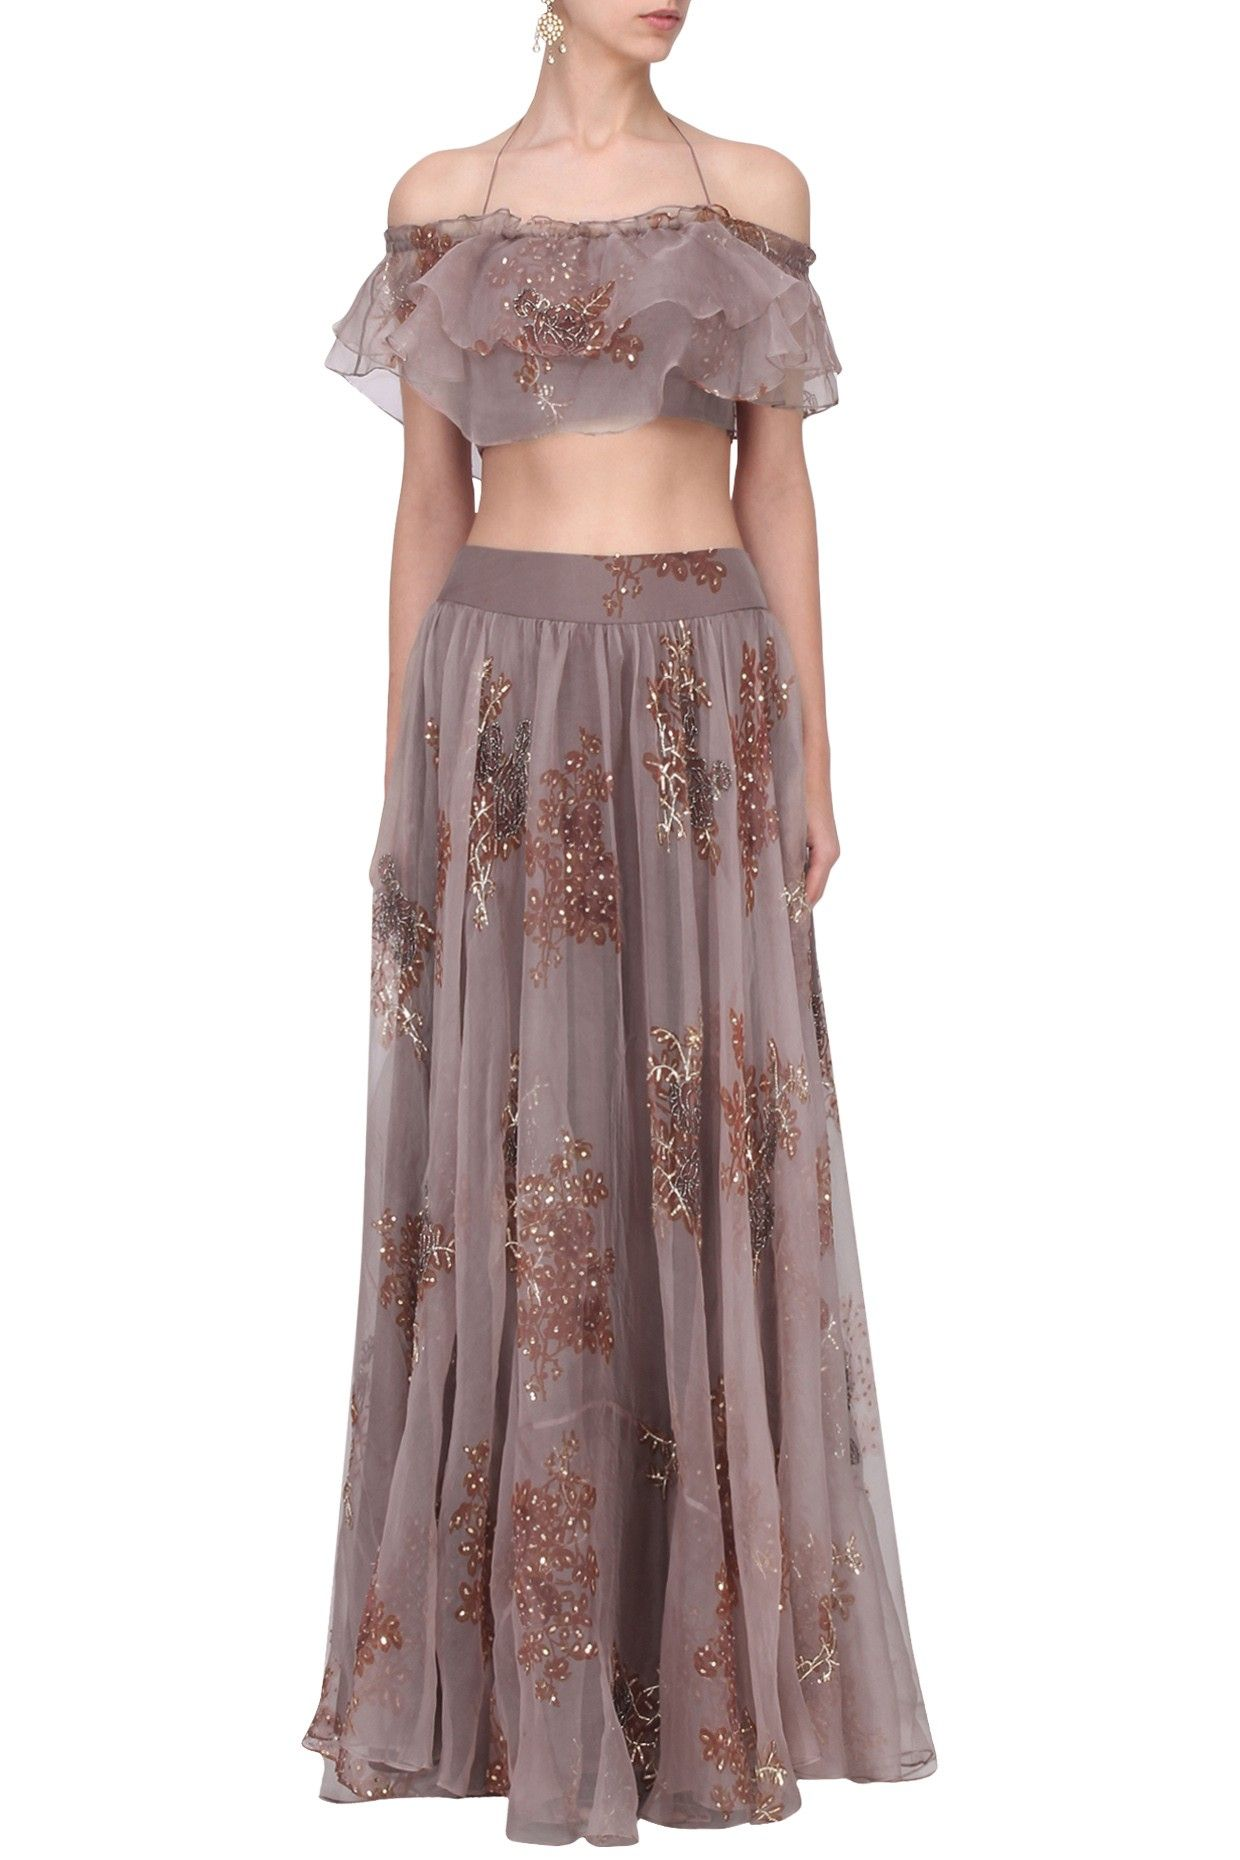 4374727b91 PLEATS BY KAKSHA & DIMPLE Purple Printed Off Shoulder Crop Top and Skirt Set.  Shop now! #pleats #embroidery #purple #offshoulder #indianfashion ...